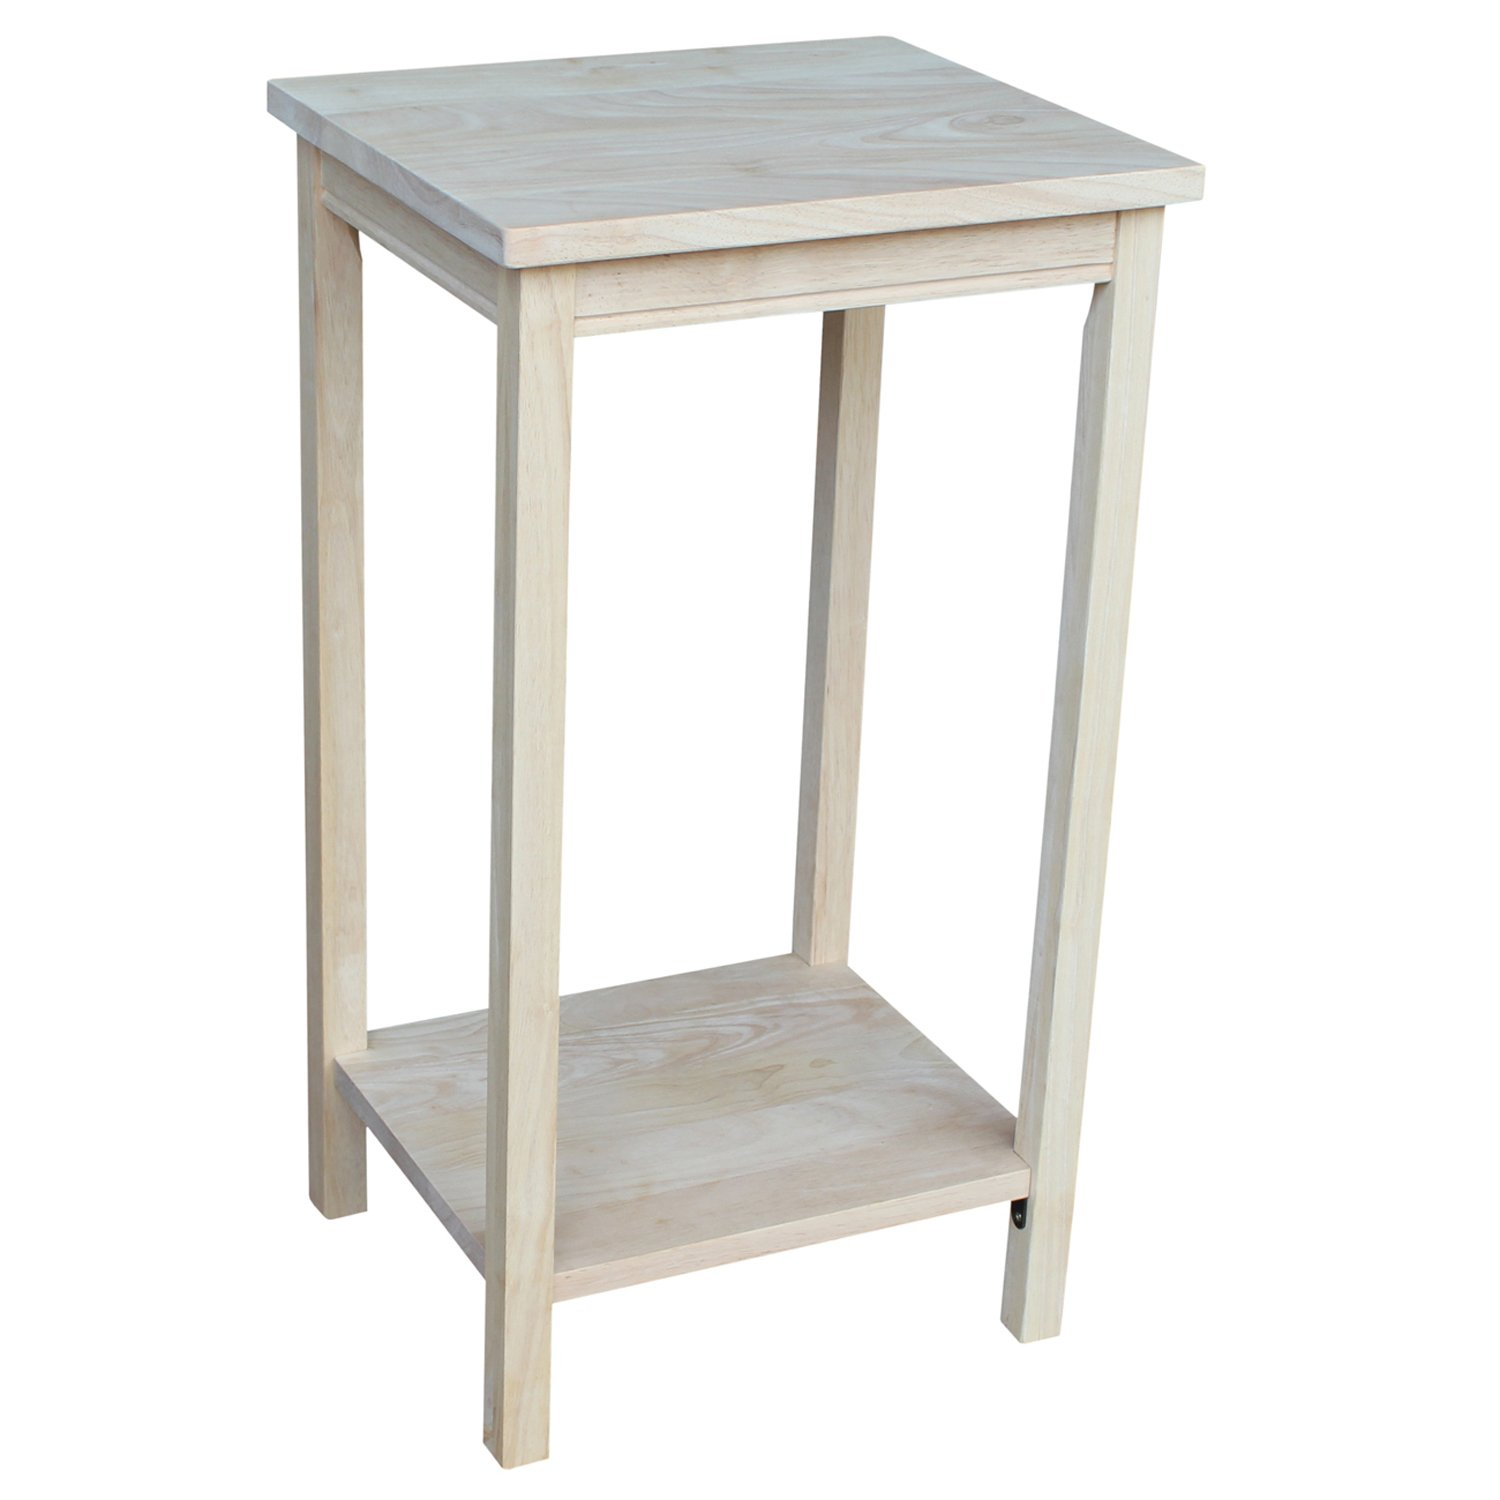 International Concepts OT-42 Portman Accent Table Unfinished